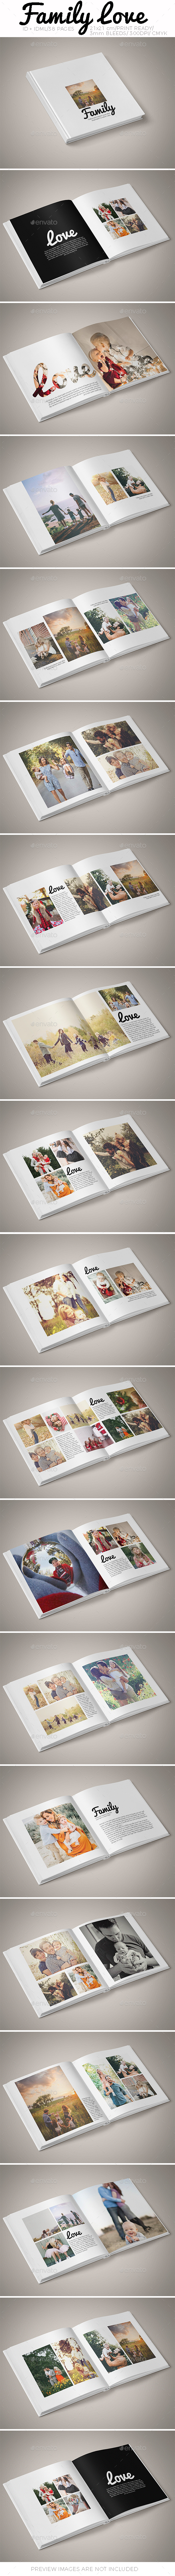 GraphicRiver Family Love Photo Album 20959495